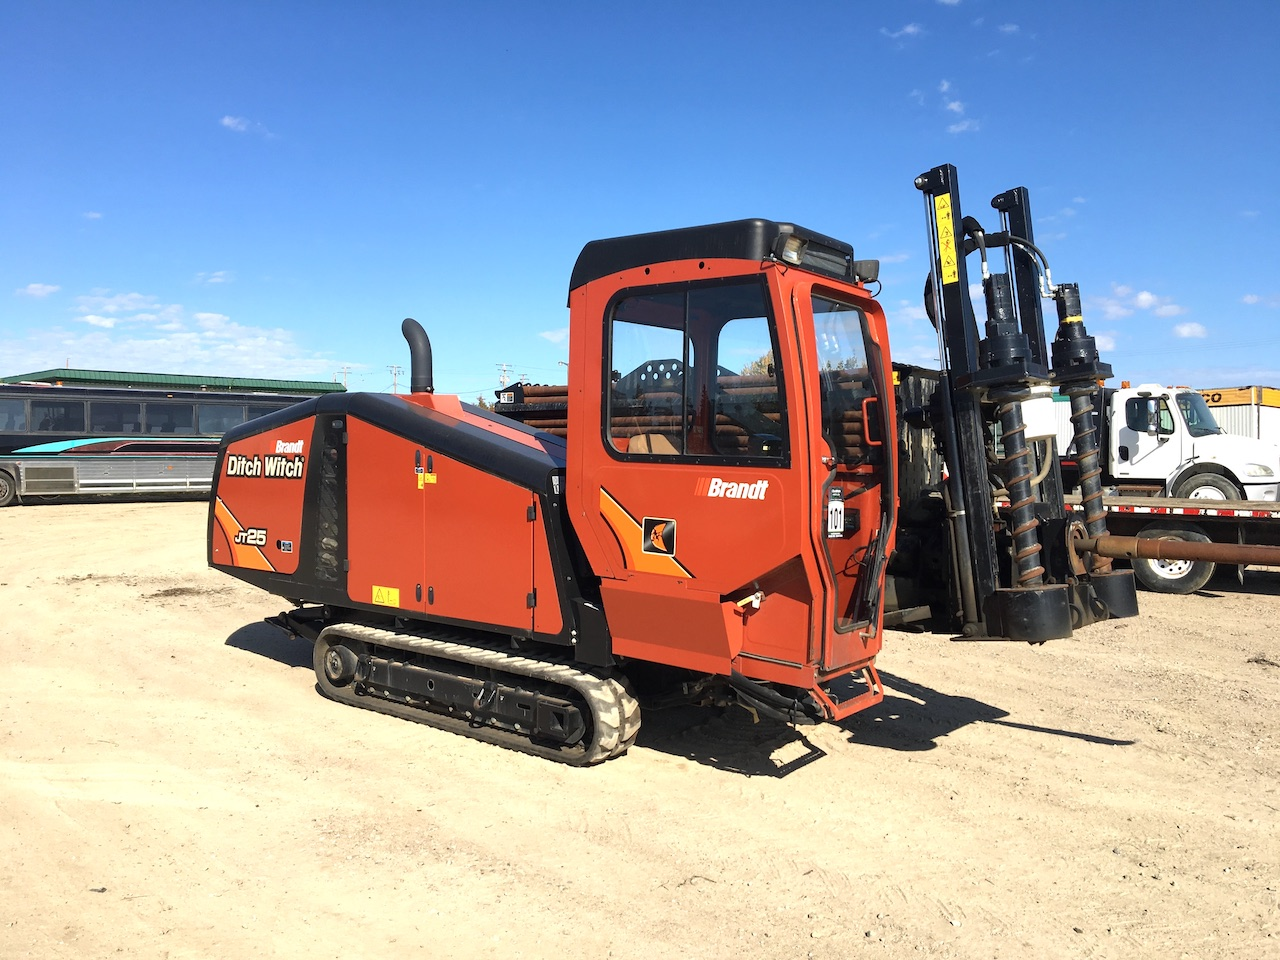 2014 Ditch Witch JT 25 Directional Drill